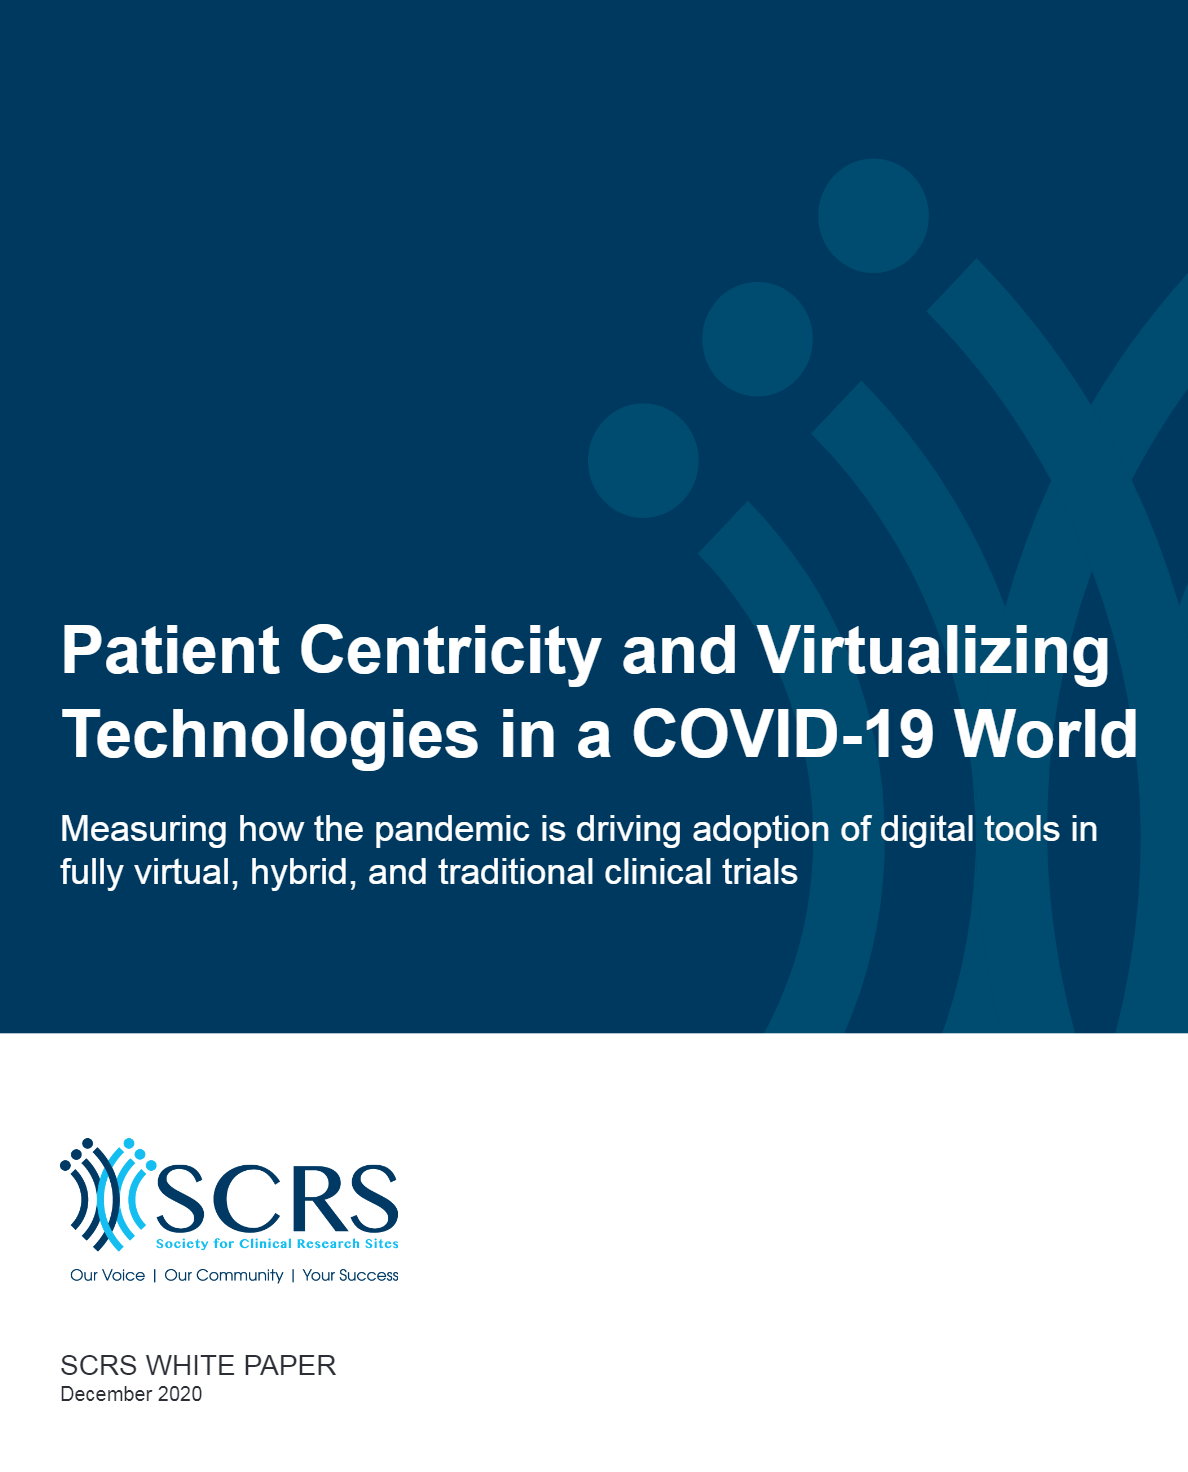 Patient Centricity and Virtualizing Technologies in a COVID-19 World